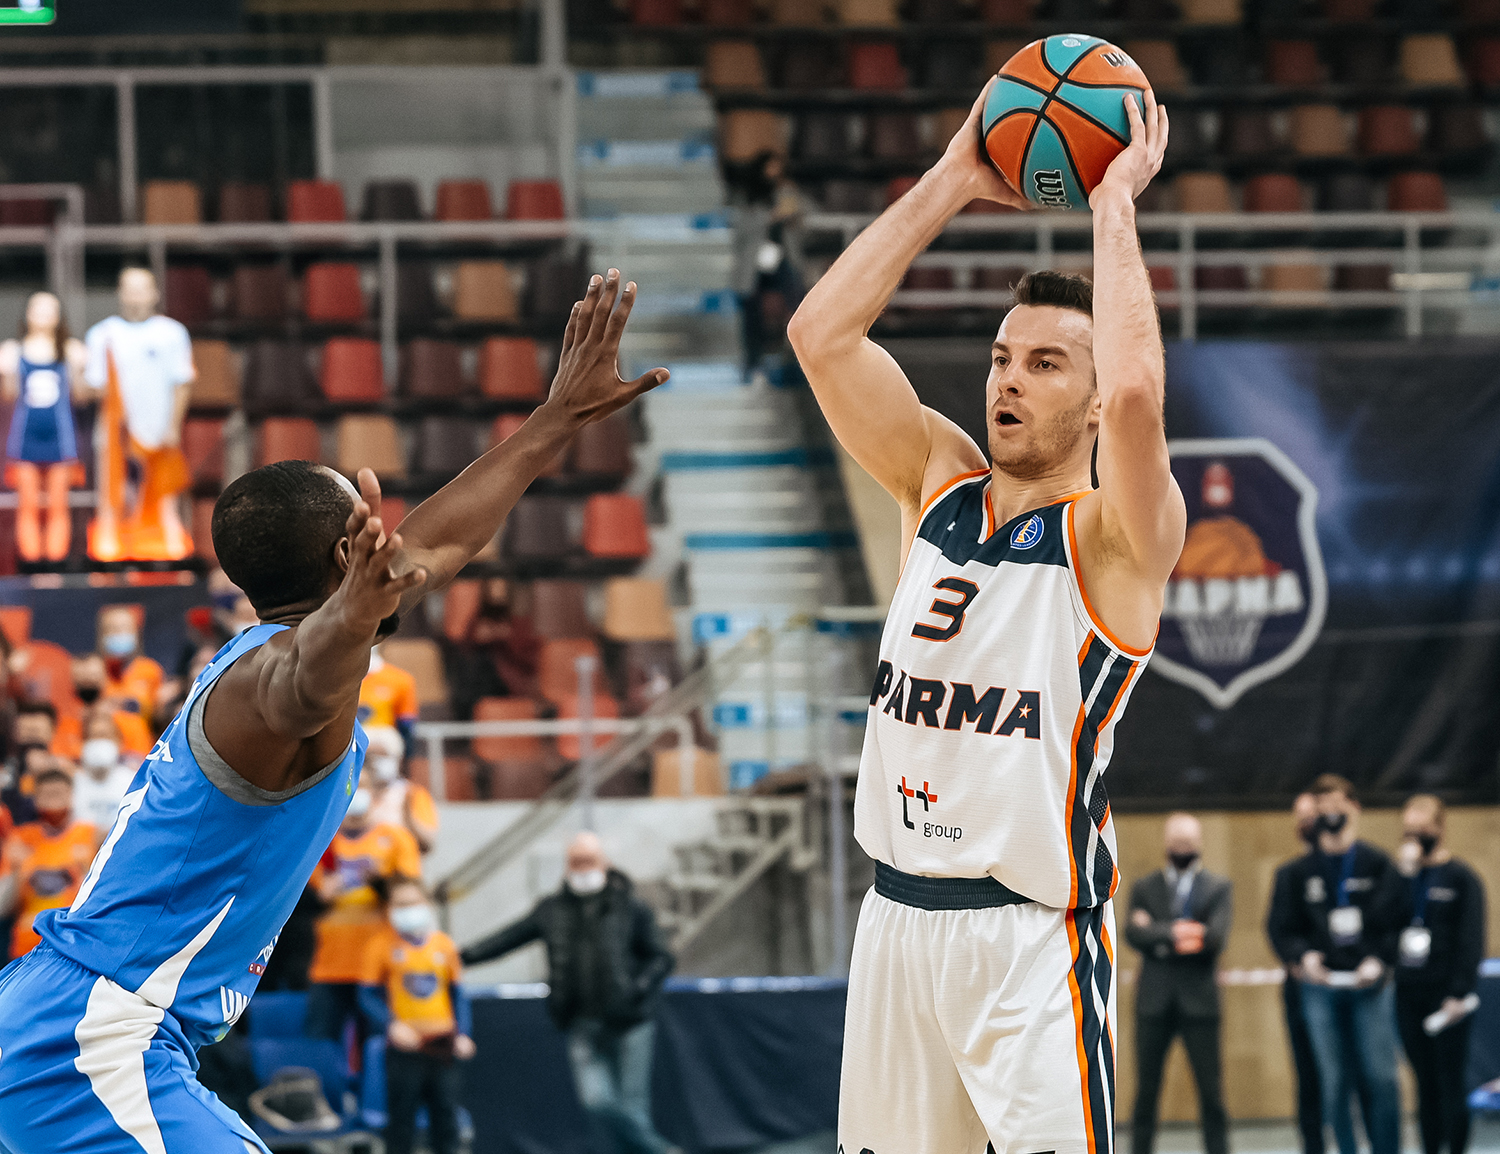 PARMA get closer to play-off zone via victory over Kalev